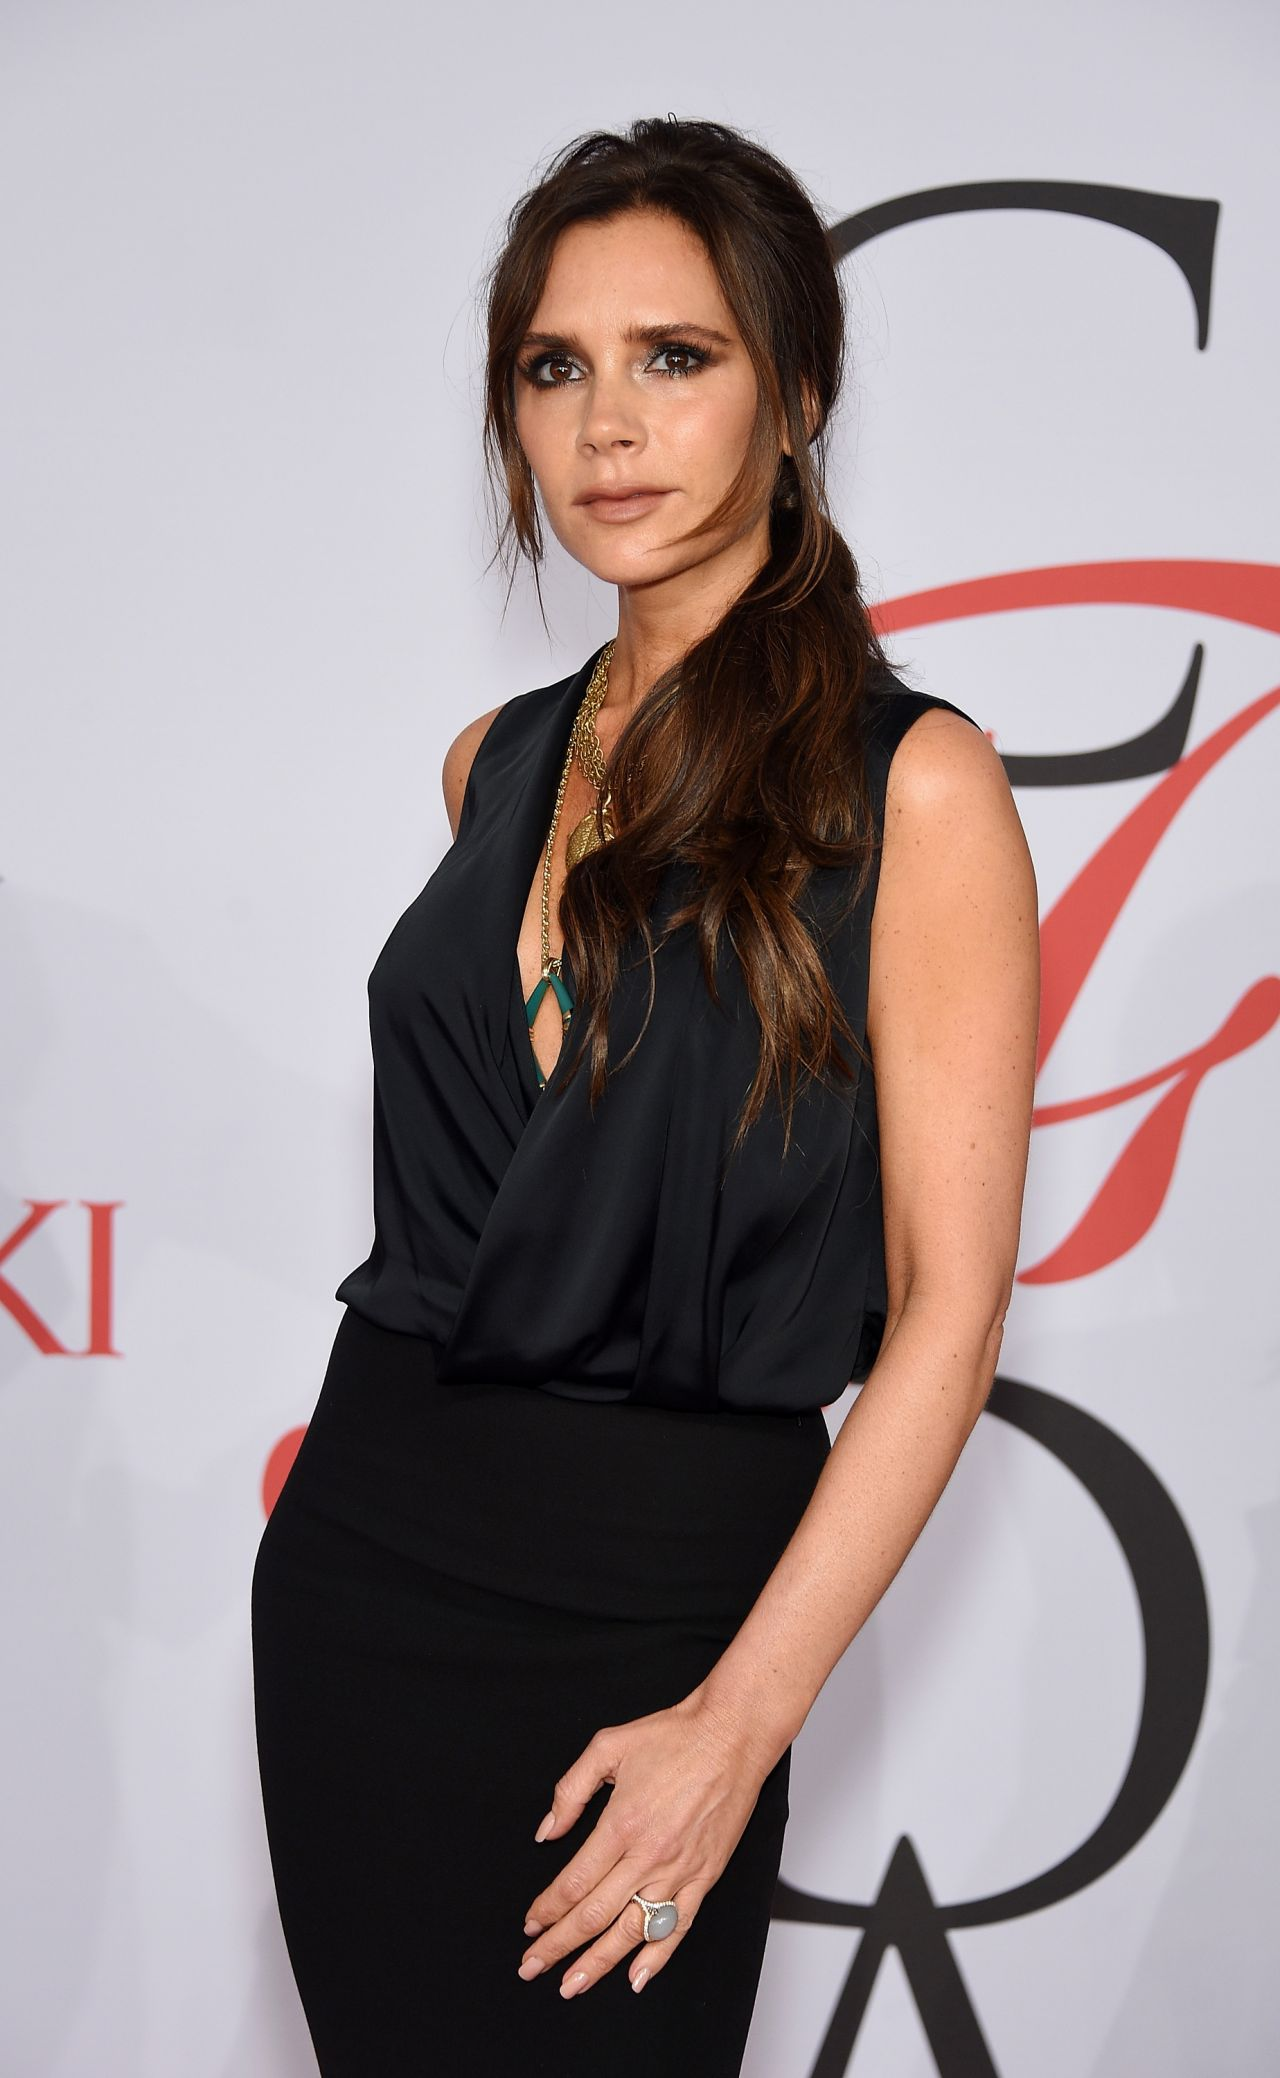 victoria-beckham-2015-cfda-fashion-awards-in-new-york-city_4